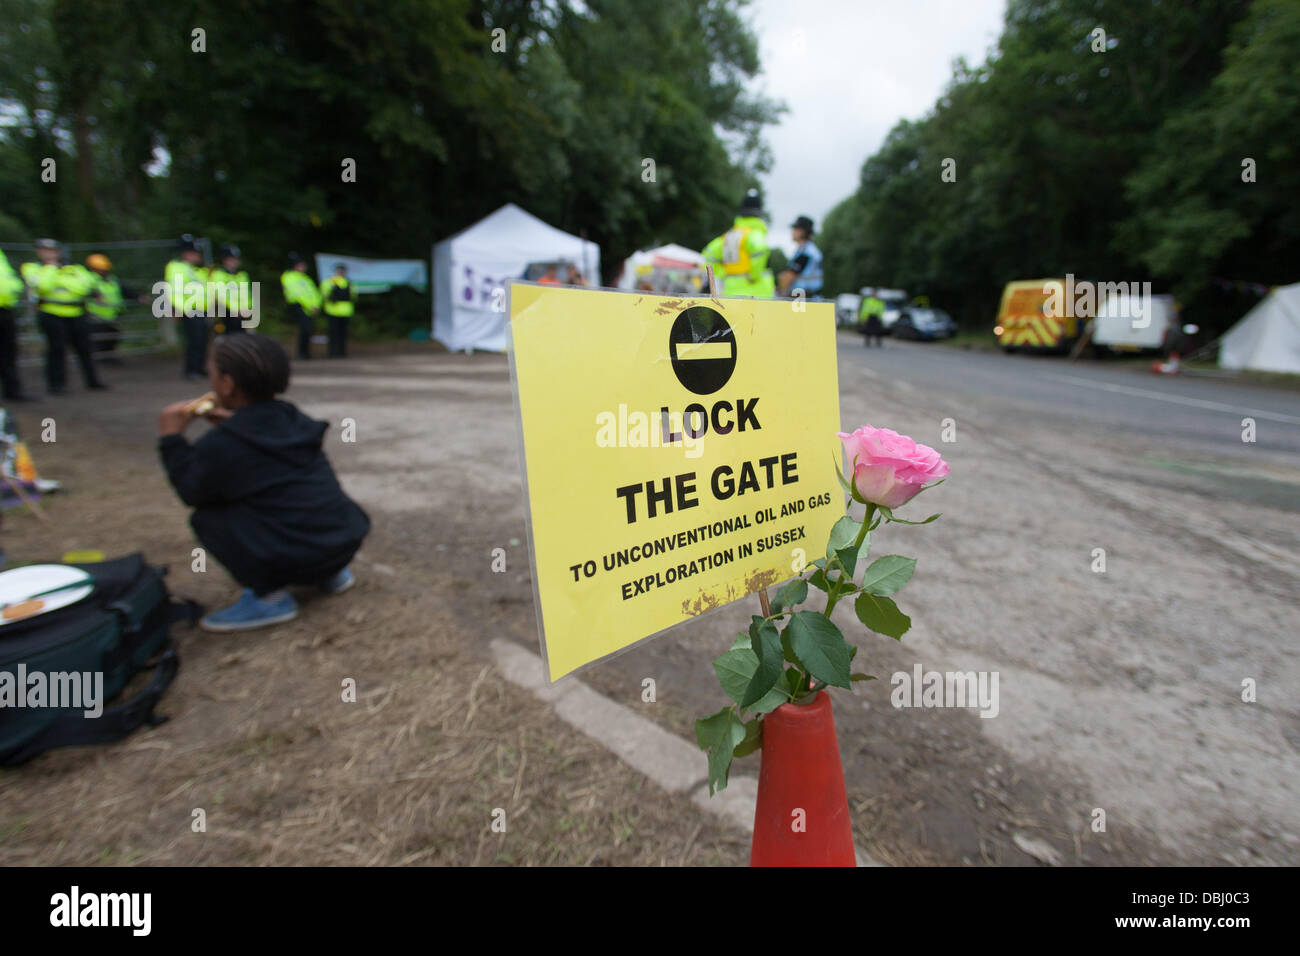 Balcombe, West Sussex, UK. 31st July, 2013. Lock the Gate placard and flower on road cone at Cuadrilla site entrance. Protest against Cuadrilla drilling & fracking just outside the village of Balcombe in West Sussex. Balcombe, West Sussex, UK. Credit:  martyn wheatley/Alamy Live News Stock Photo